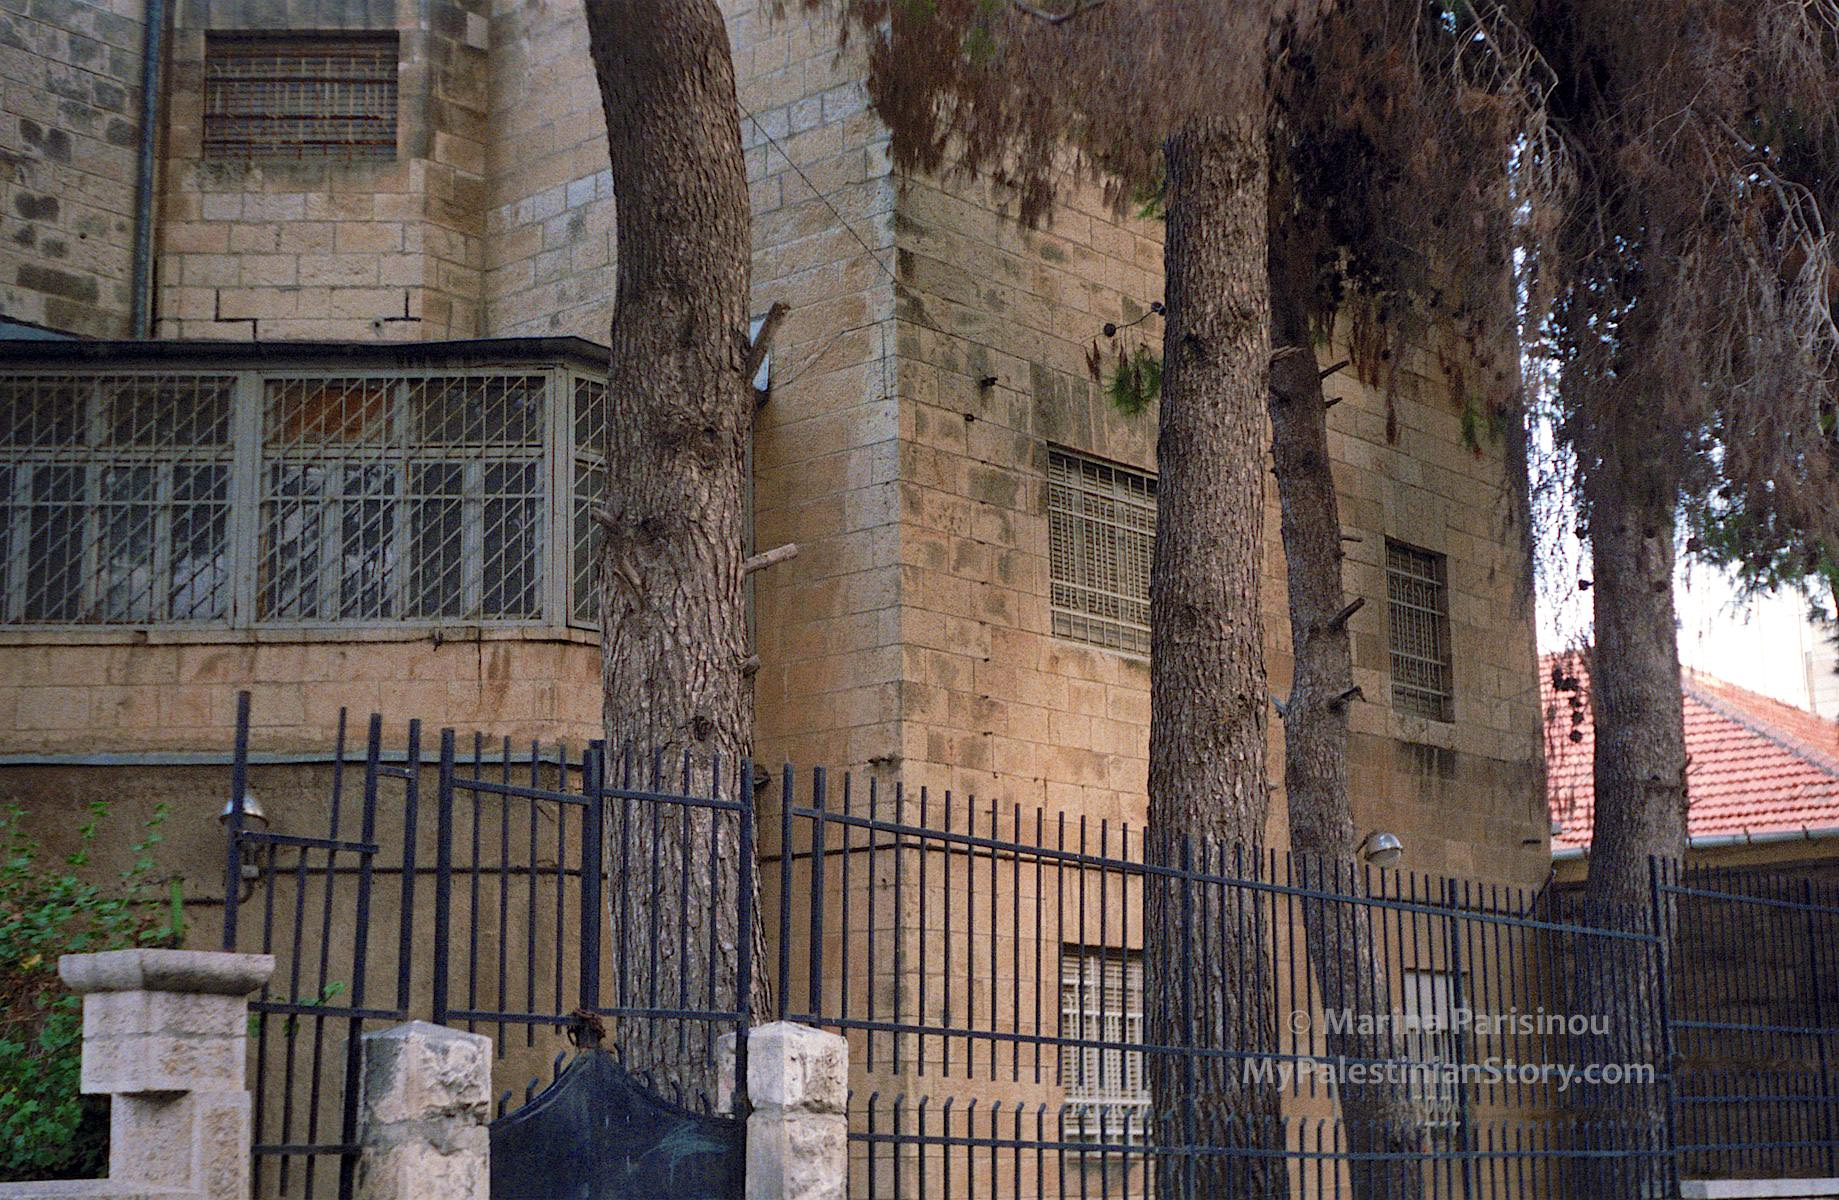 1986 photo of building where Marika and her family lived until 1948.